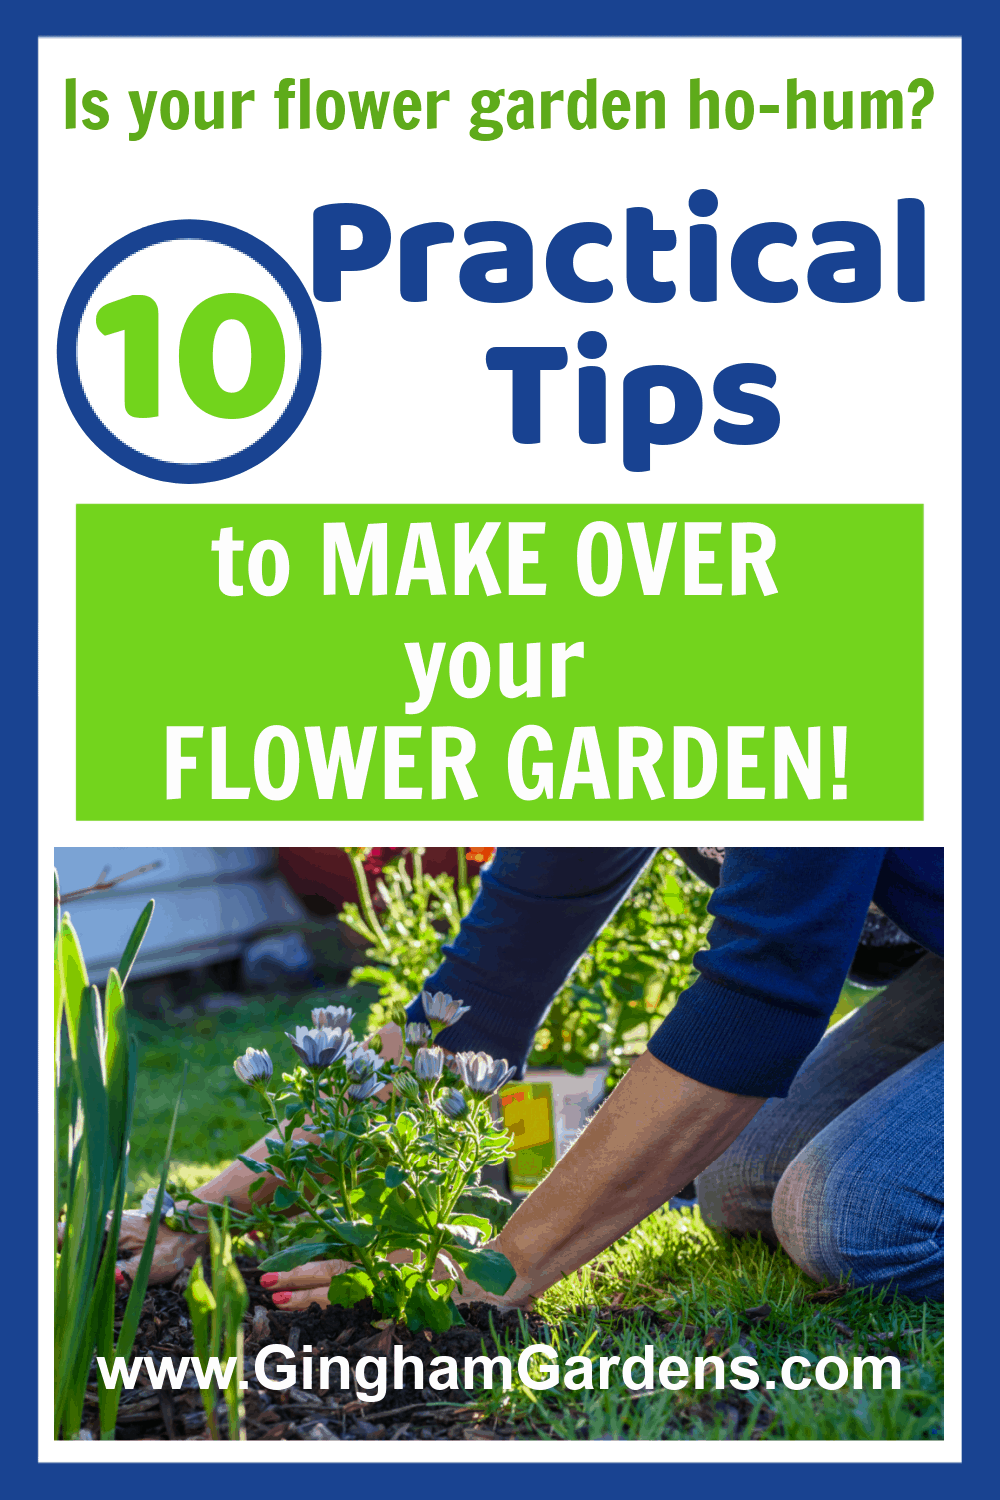 Image of a Gardener with text overlay - 10 Practical Tips to Make Over your Flower Garden